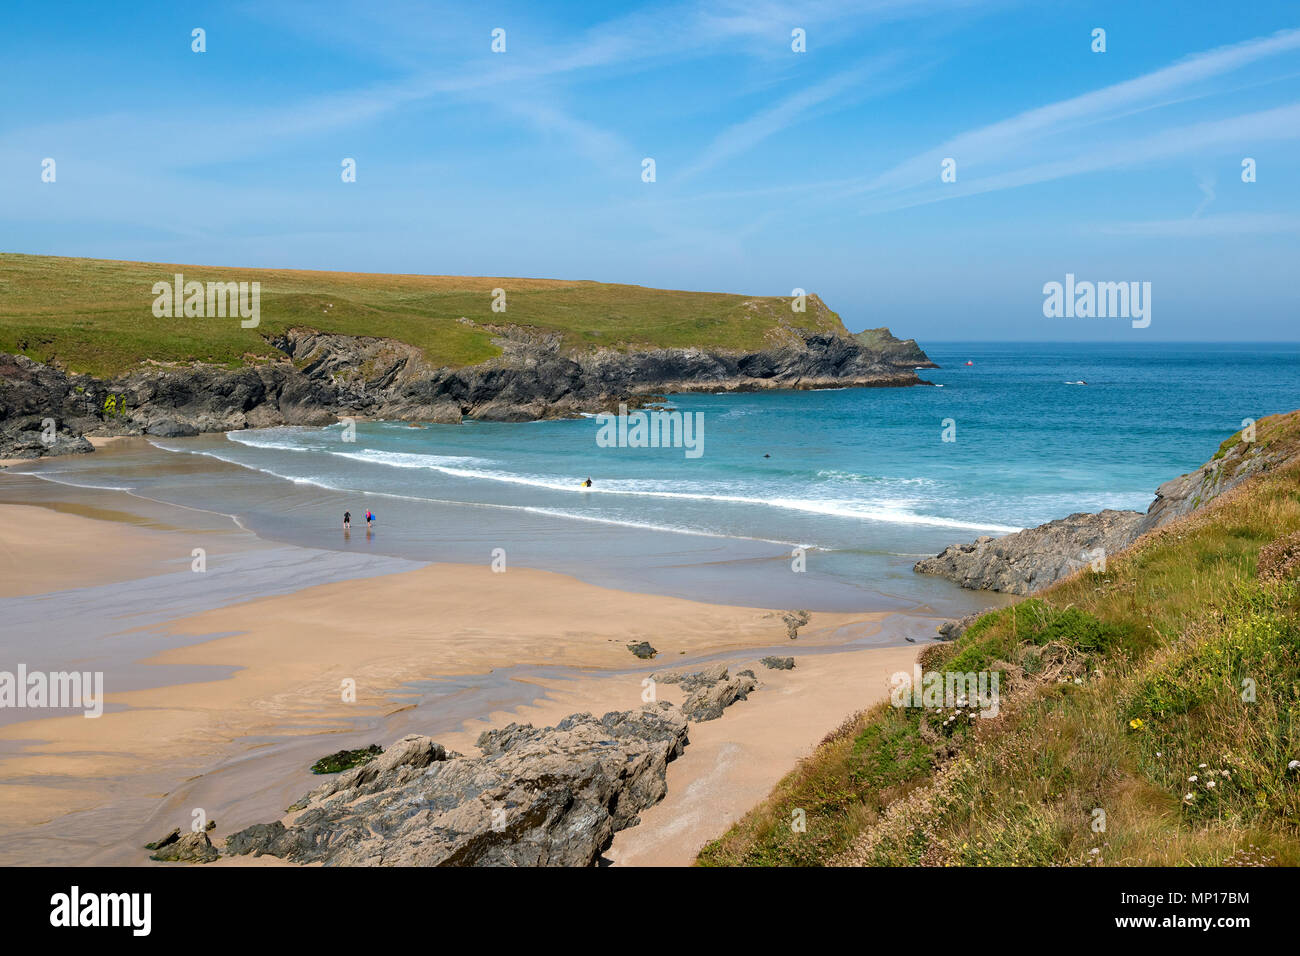 porth joke, secluded cove, cornwall, england, britain, uk. - Stock Image